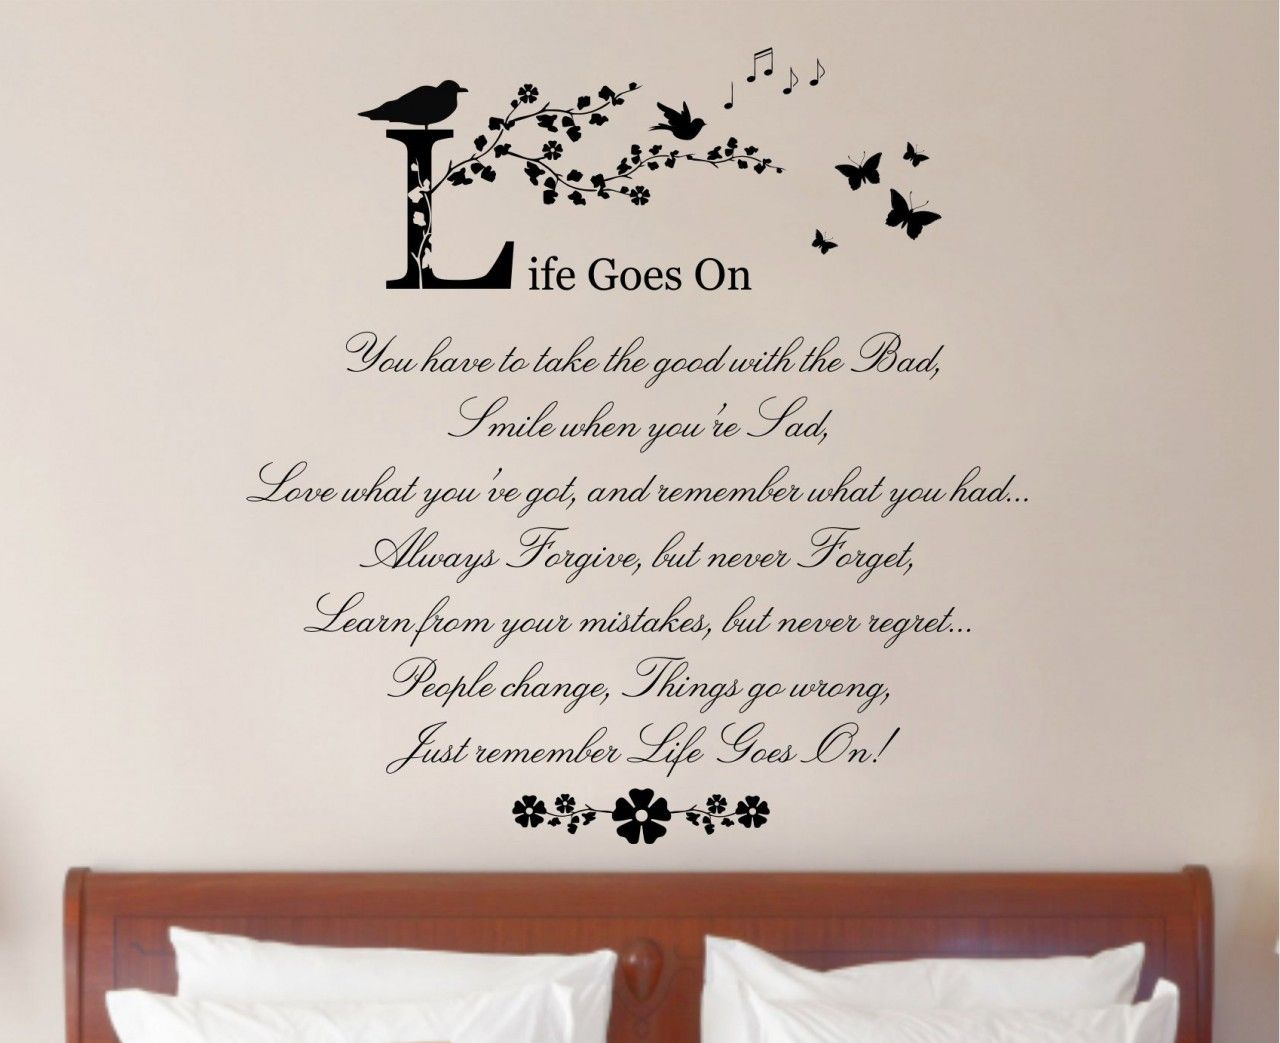 Bedroom wall art quotes - Life Goes On Quote Vinyl Wall Art Sticker Decal Mural Home Wall Decor Living Room Bedroom Wide X High